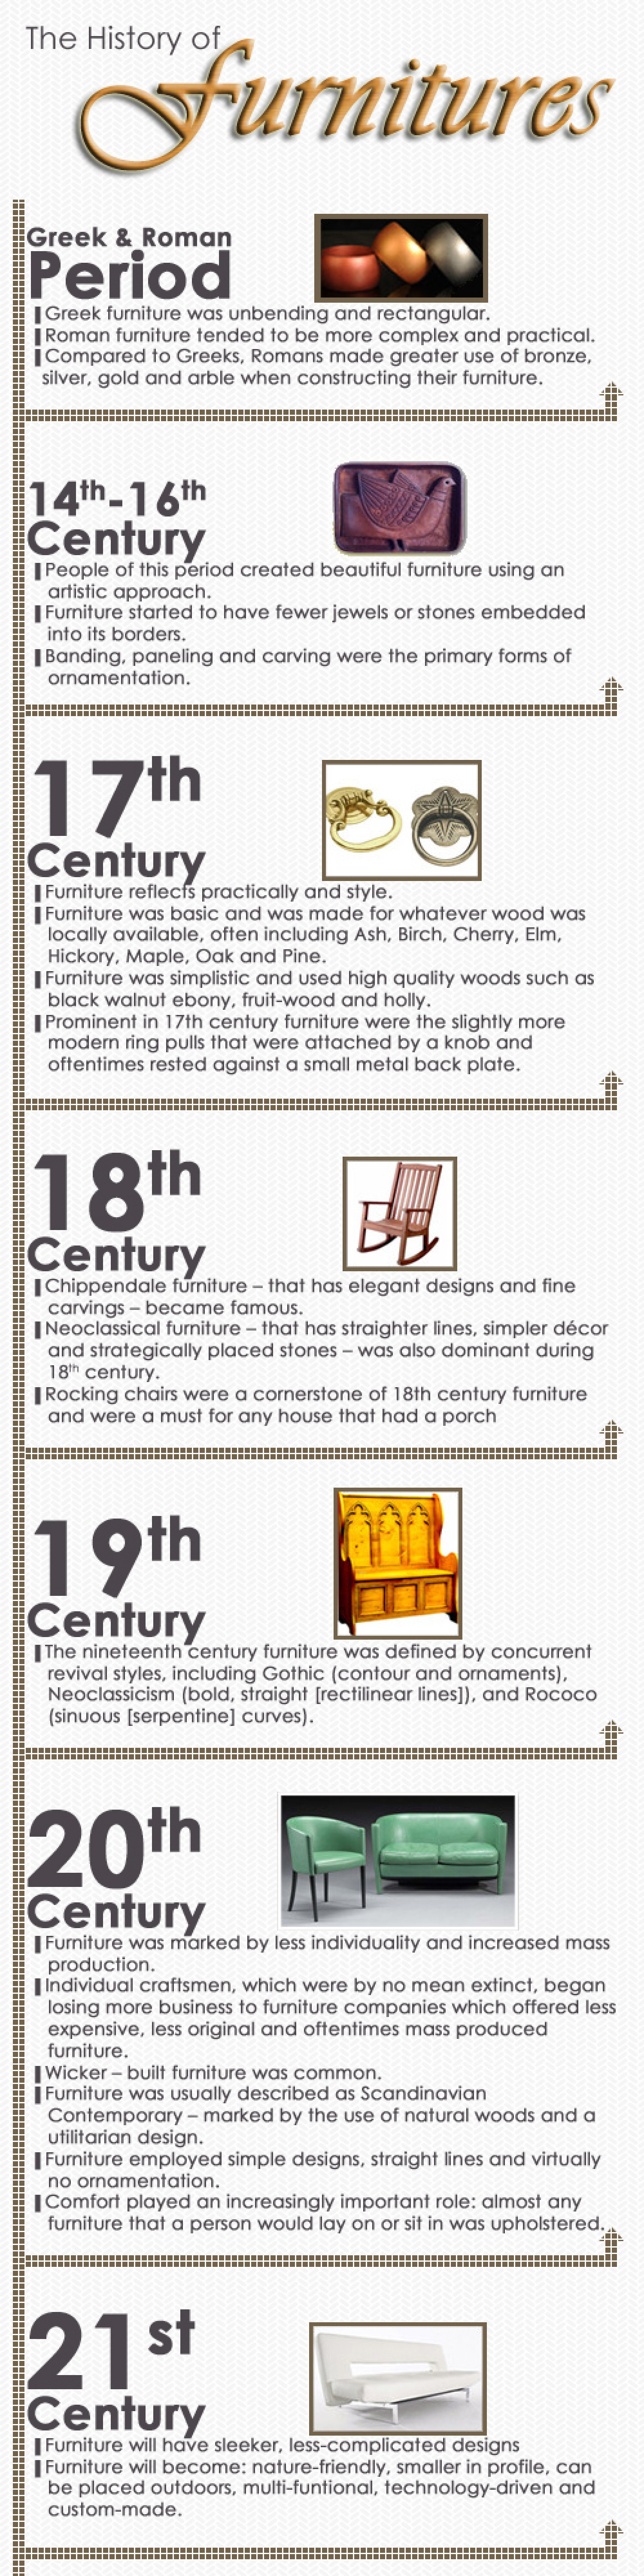 The History of Furnitures Infographic